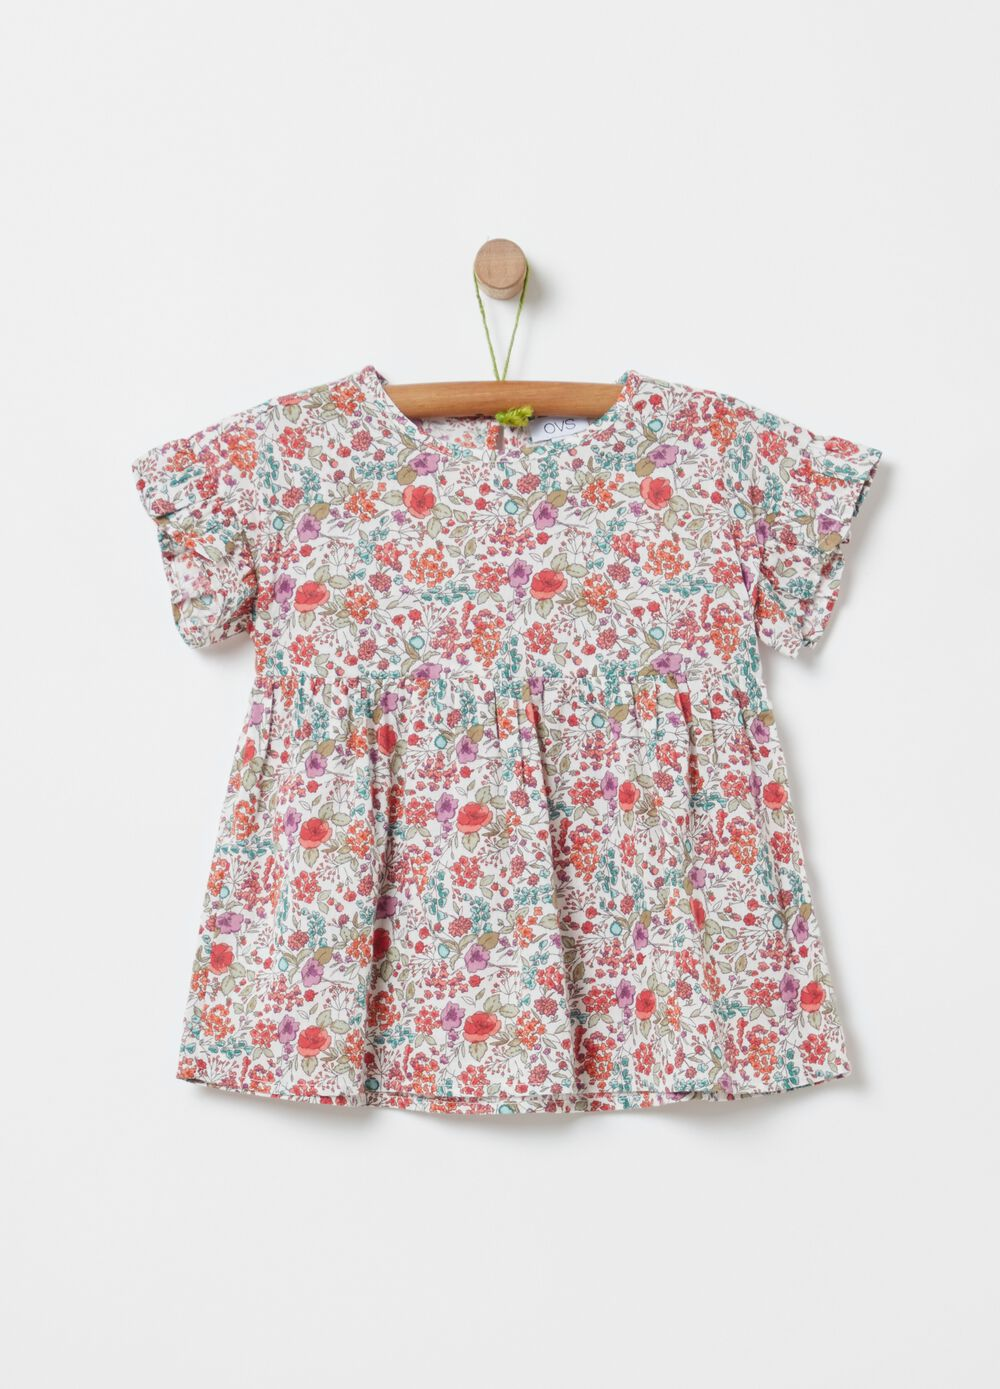 Floral blouse in 100% organic cotton